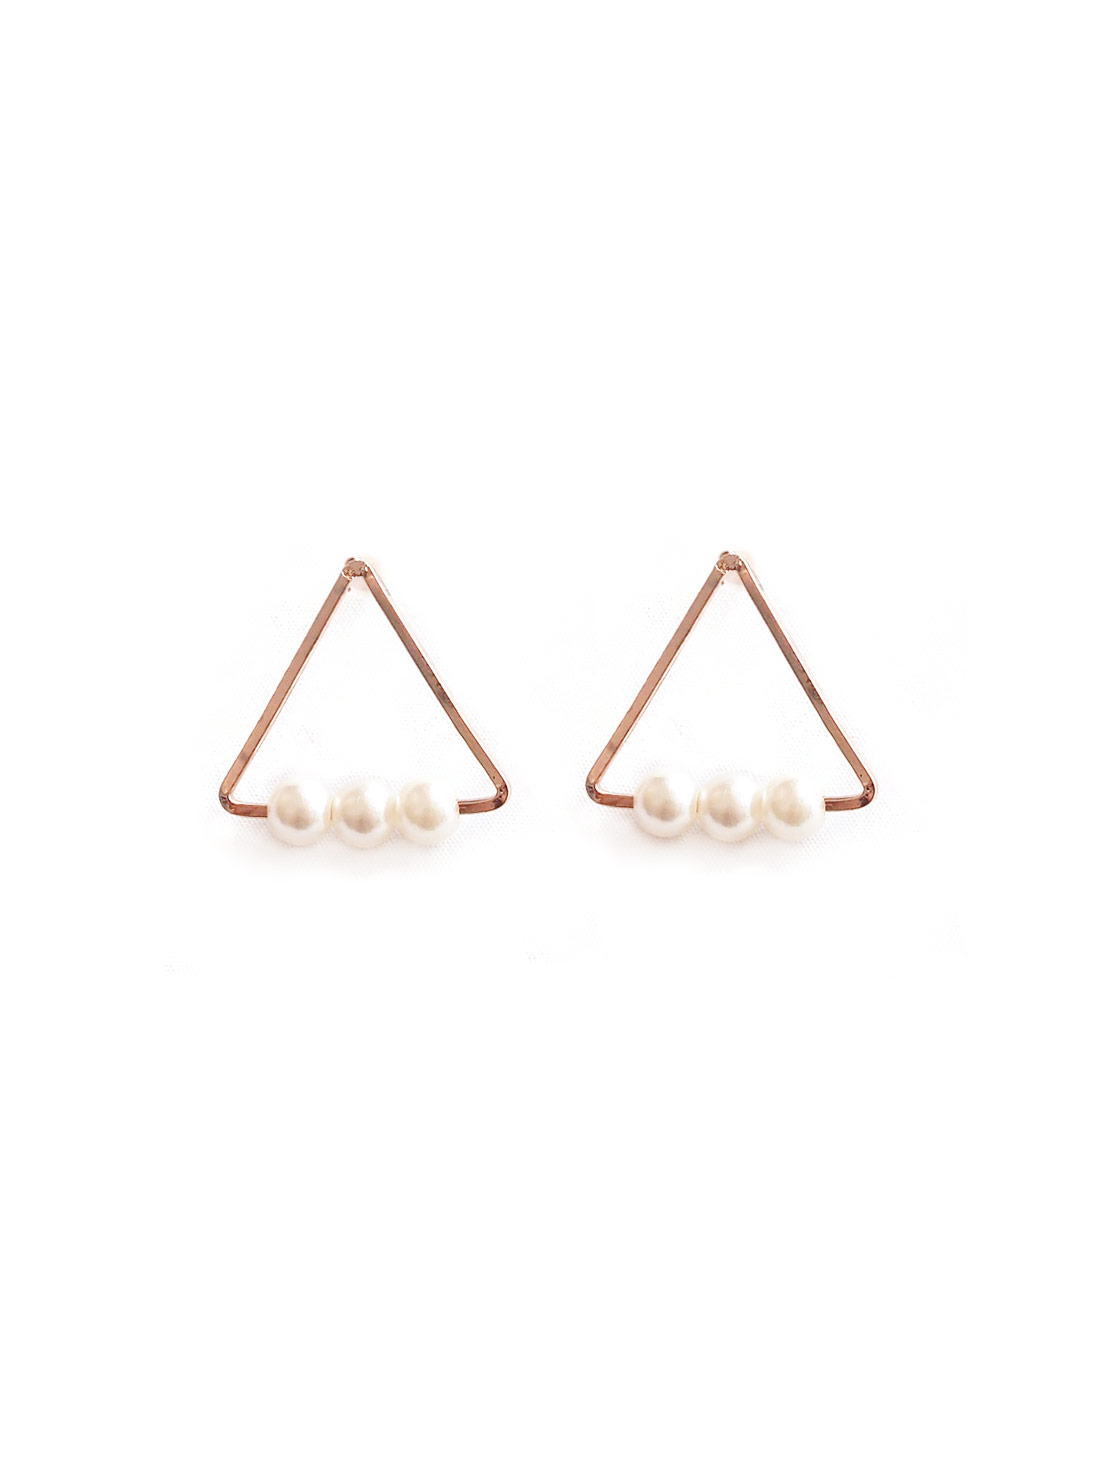 ACC378-Vienna-Triangle-Pearl-Earrings-in-Rose-Gold-1